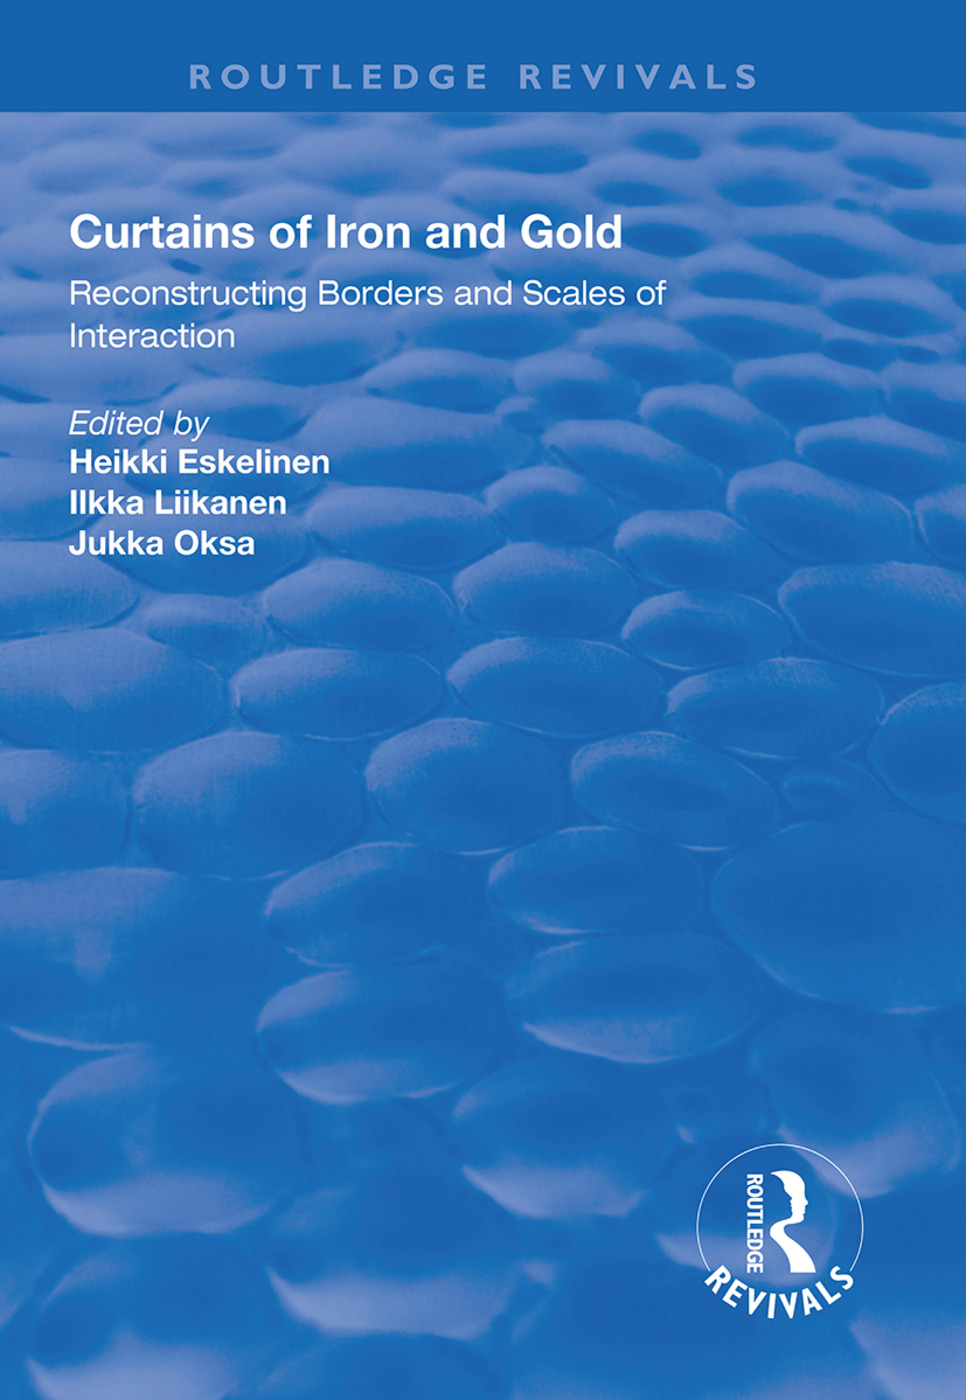 Curtains of Iron and Gold: Reconstructing Borders and Scales of Interaction book cover